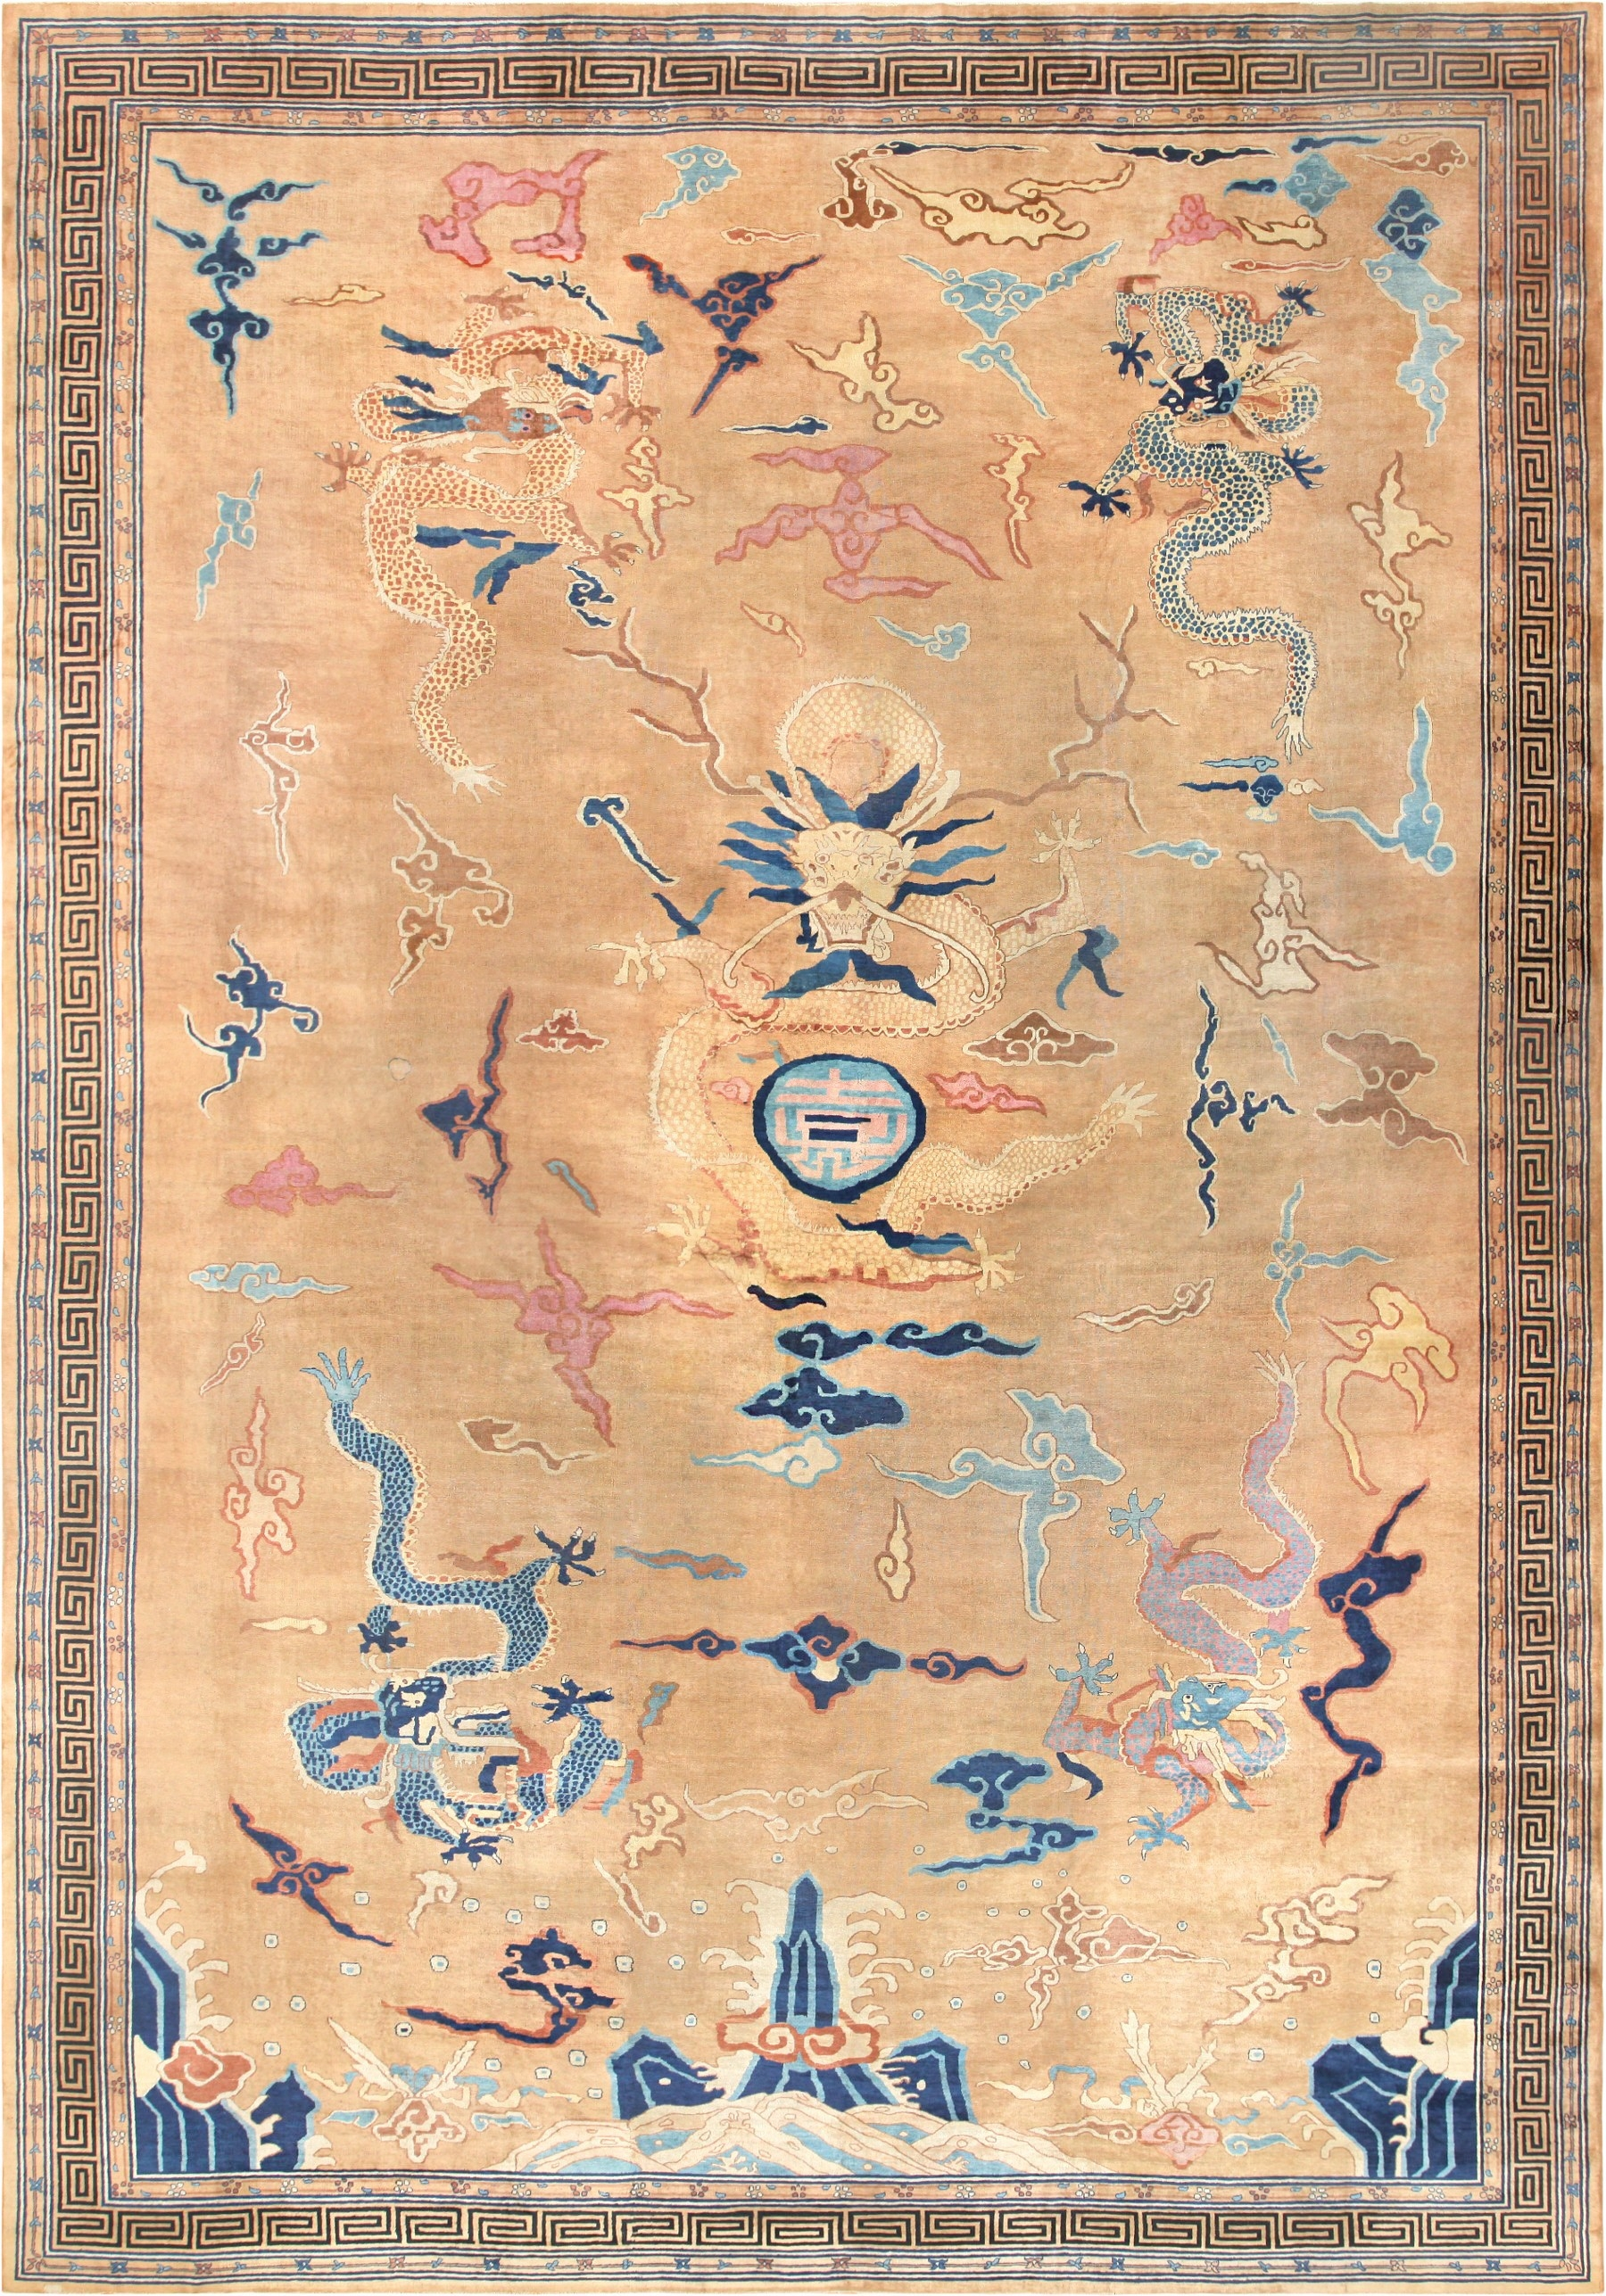 Chinese Art Deco Rug Art Deco Rug 46621 Nazmiyal Nyc With Chinese Rugs (View 9 of 15)